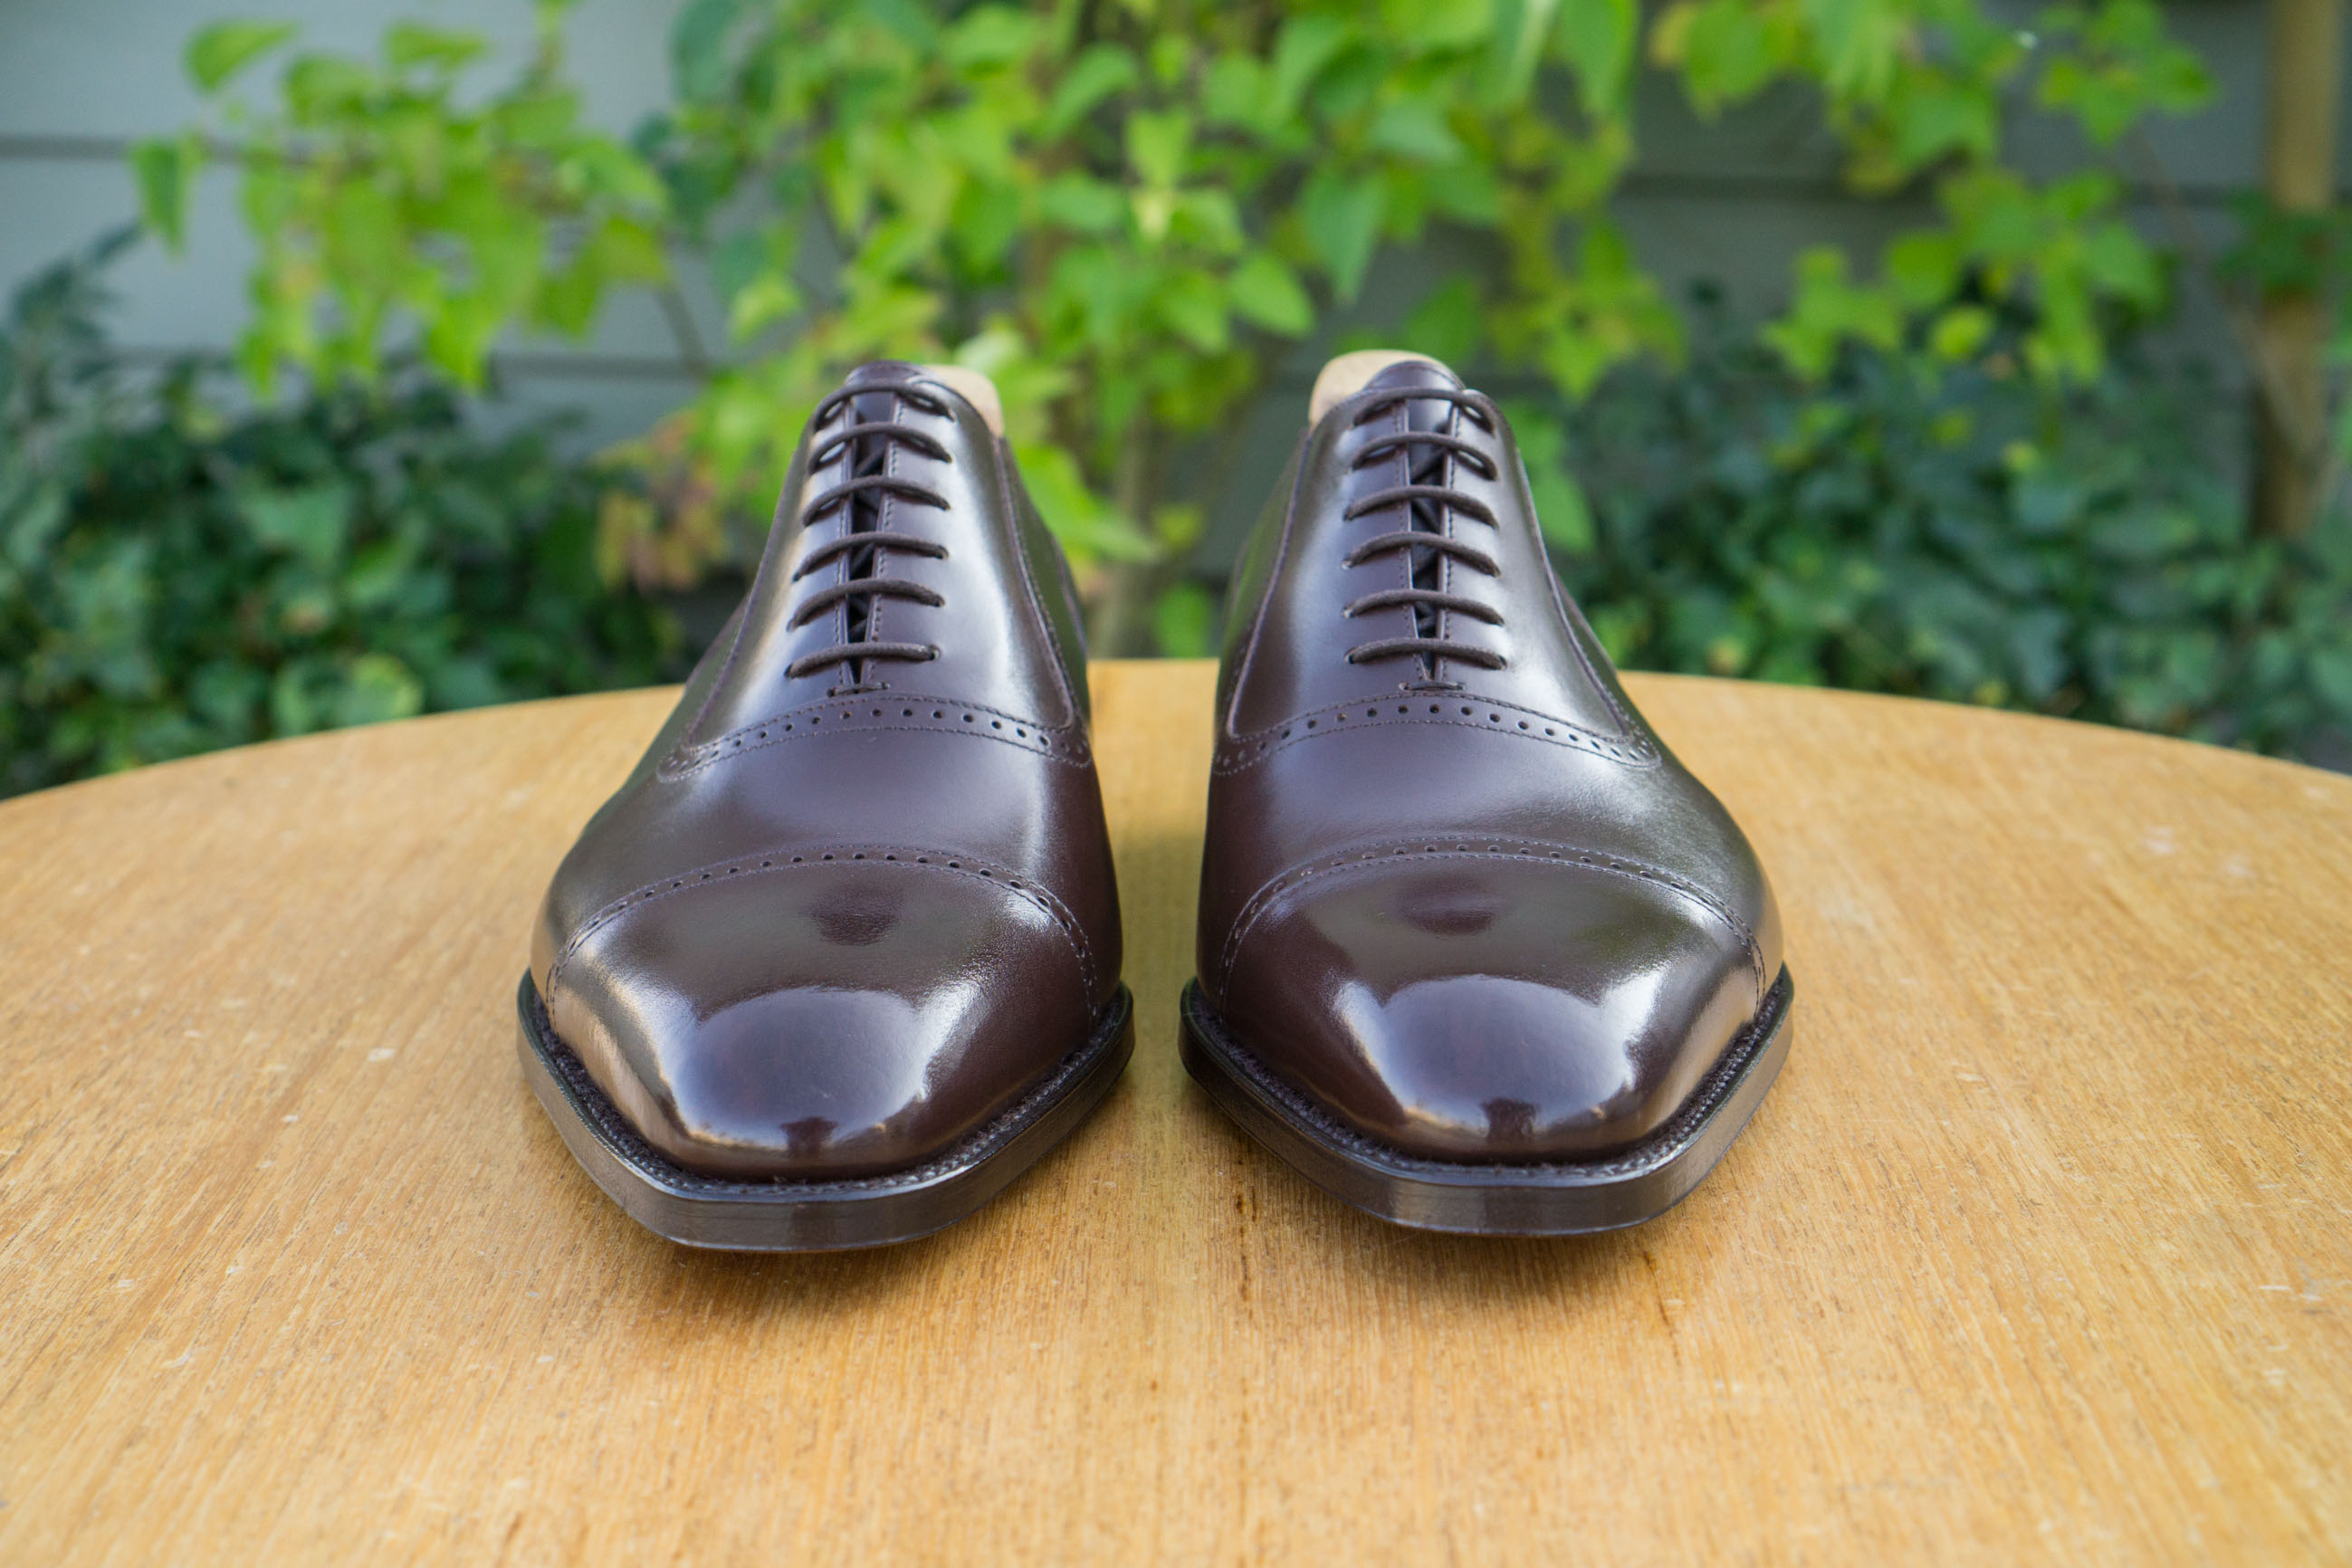 Orban's - Cheap, affordable European made Goodyear Welted shoes